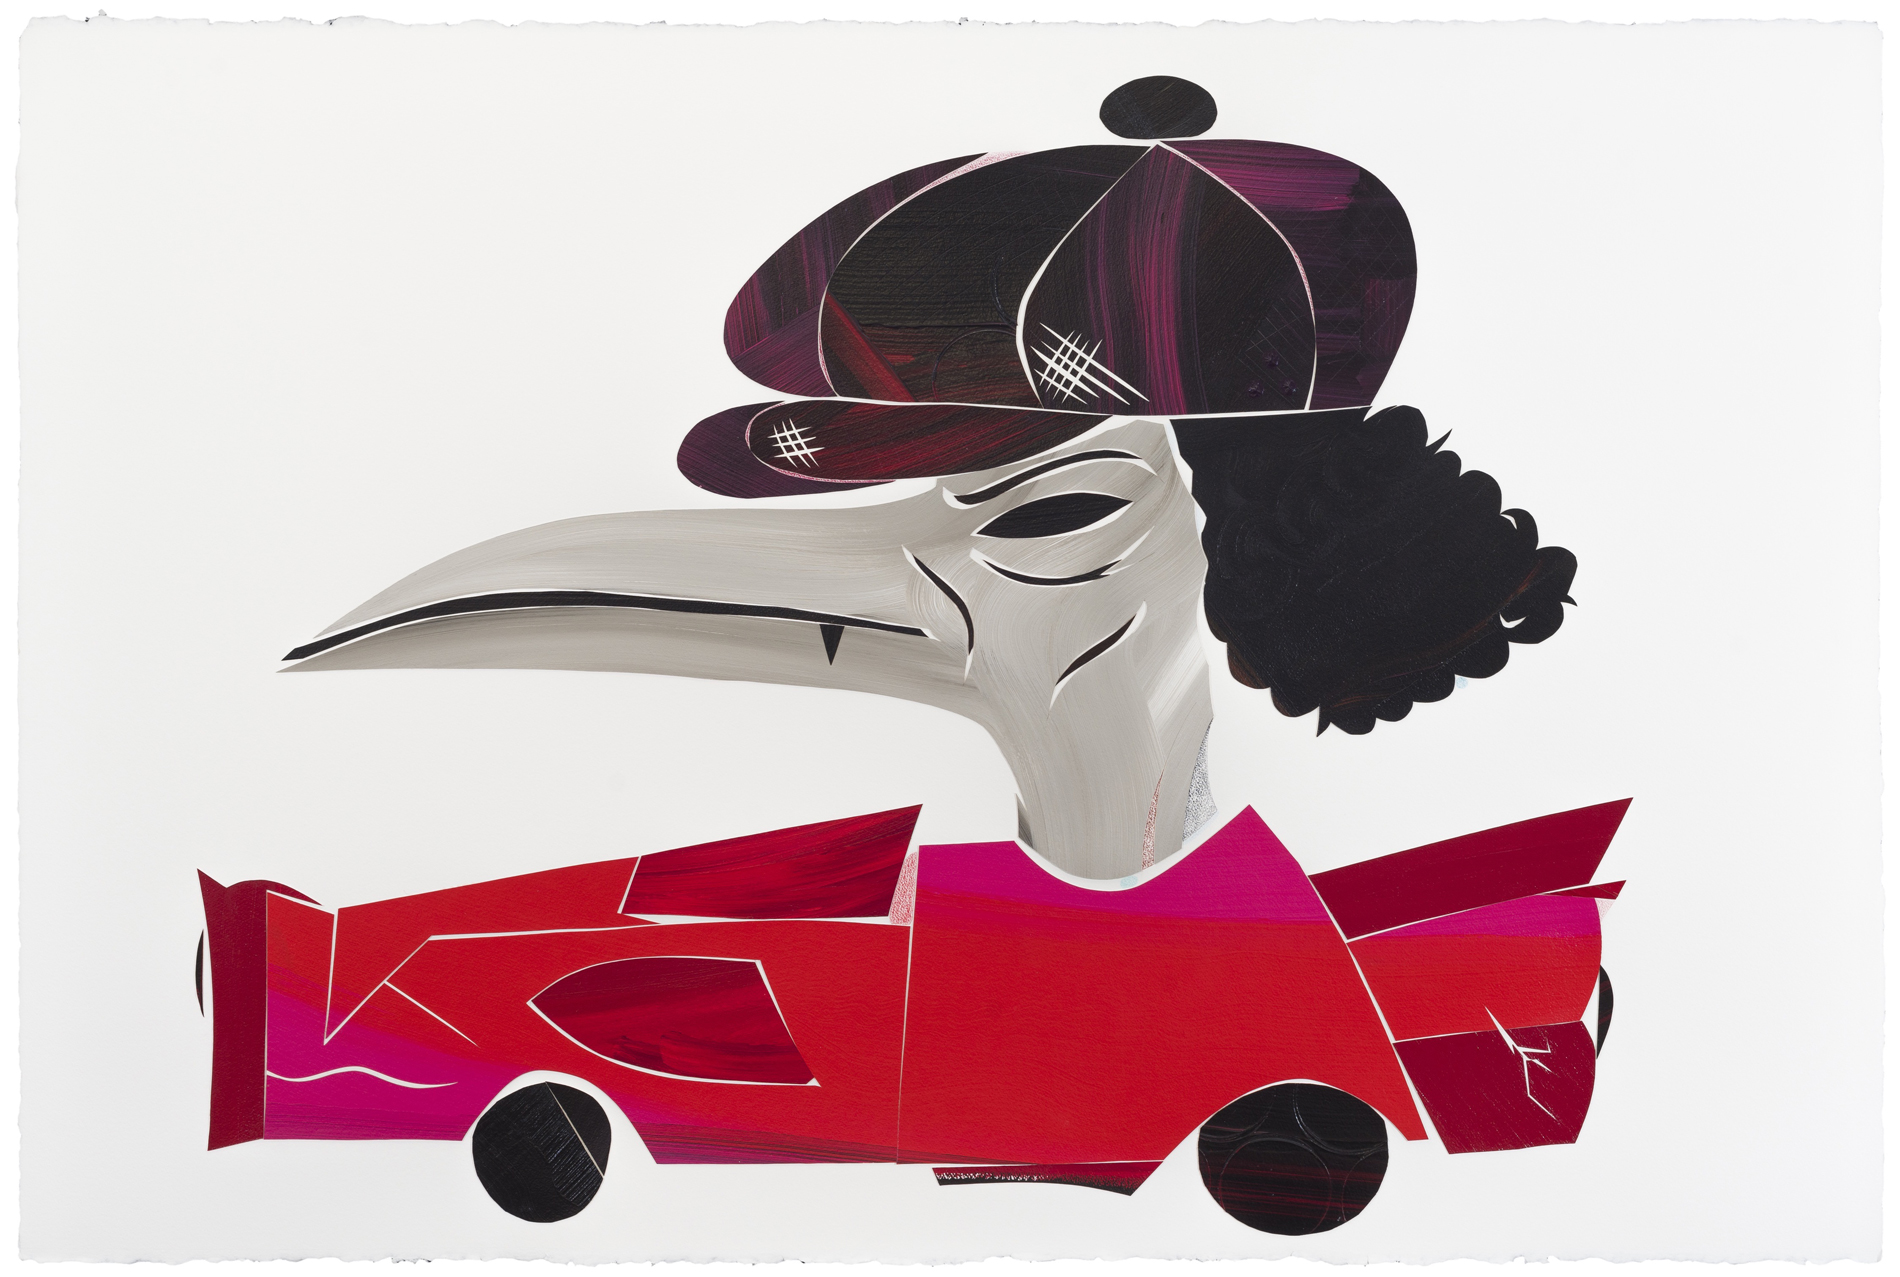 Abdul Vas. The Cut-Outs Rock Edge. Brian Johnson Rockers and Rollers, 2014